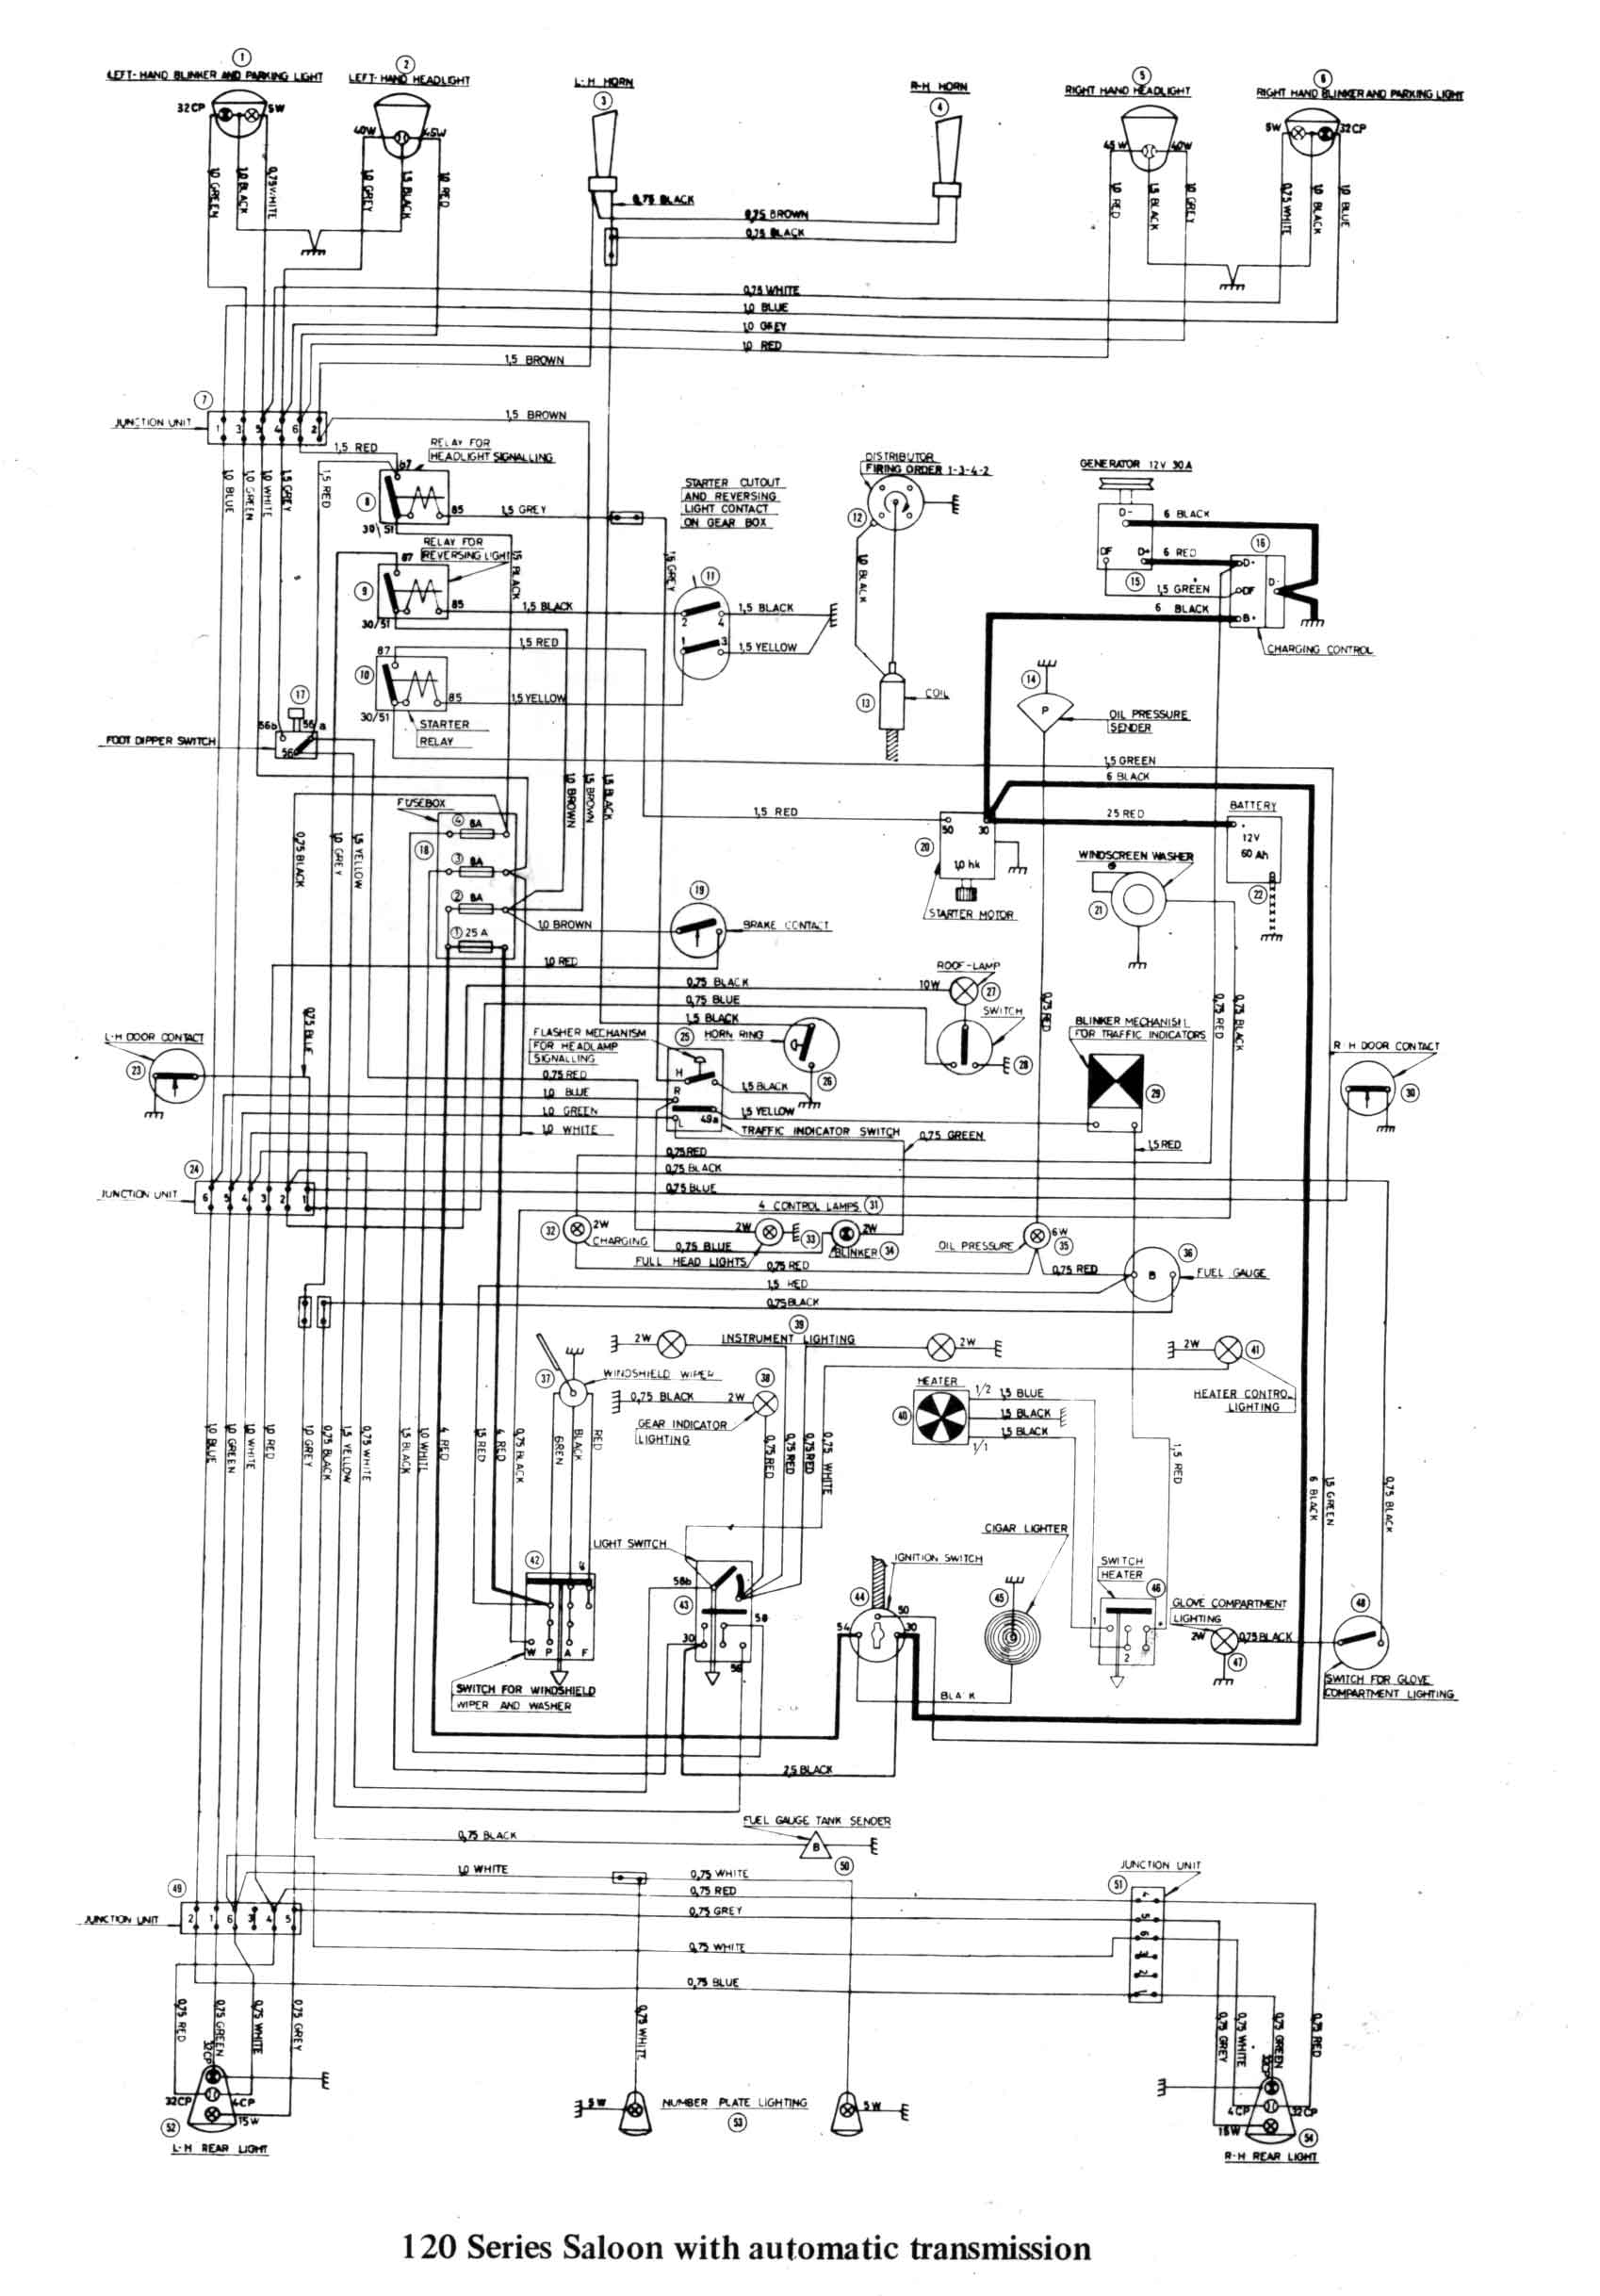 2003 Volvo Semi Tractor Wiring Diagram Wiring Diagrams Data Write Write Ungiaggioloincucina It